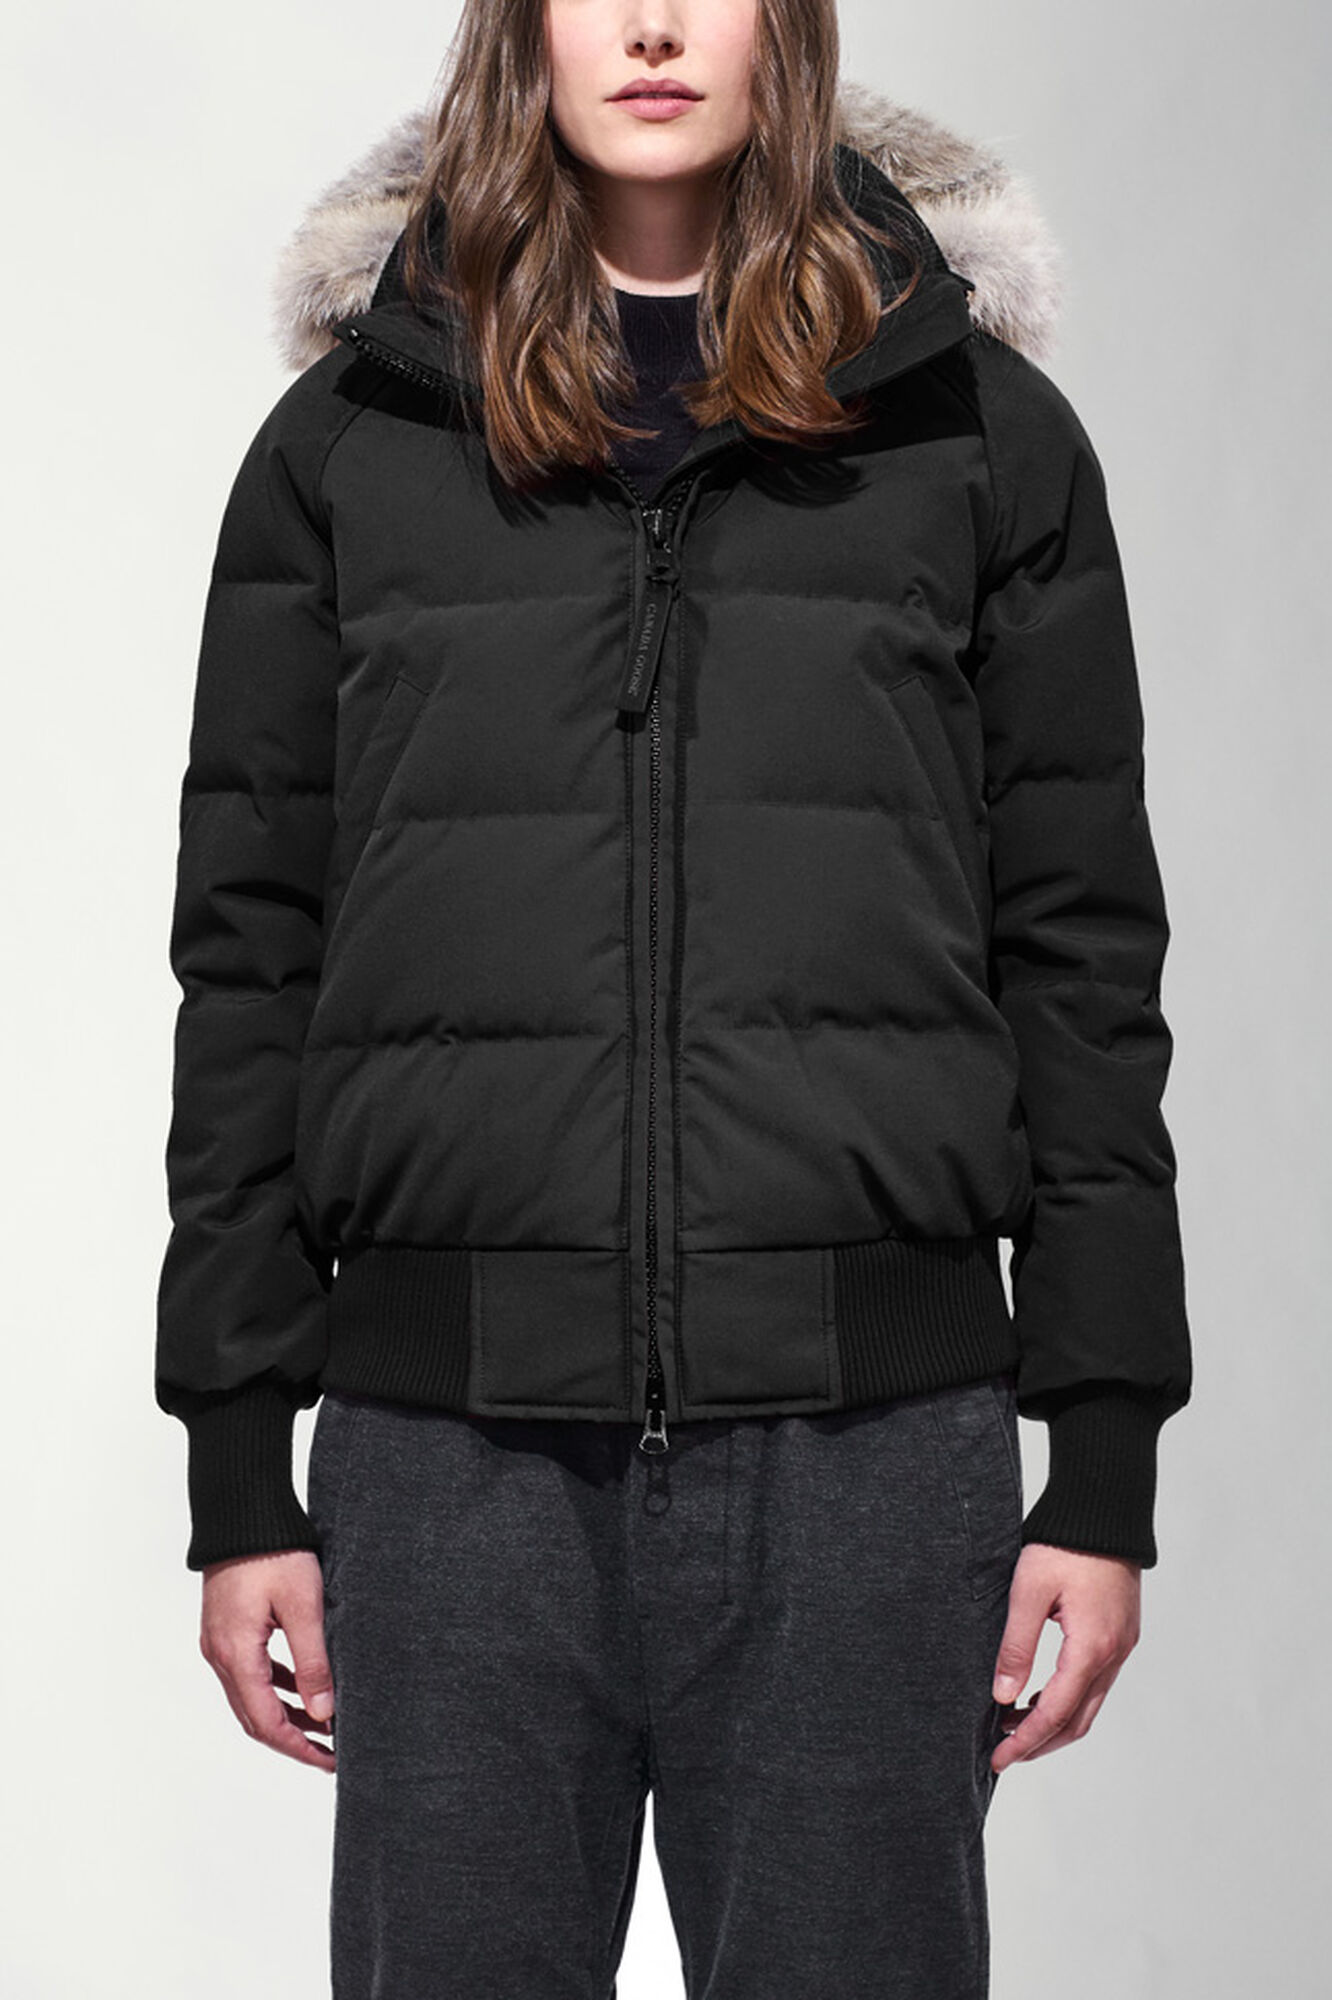 Canada Goose womens outlet fake - Womens Extreme Weather Outerwear | Canada Goose?